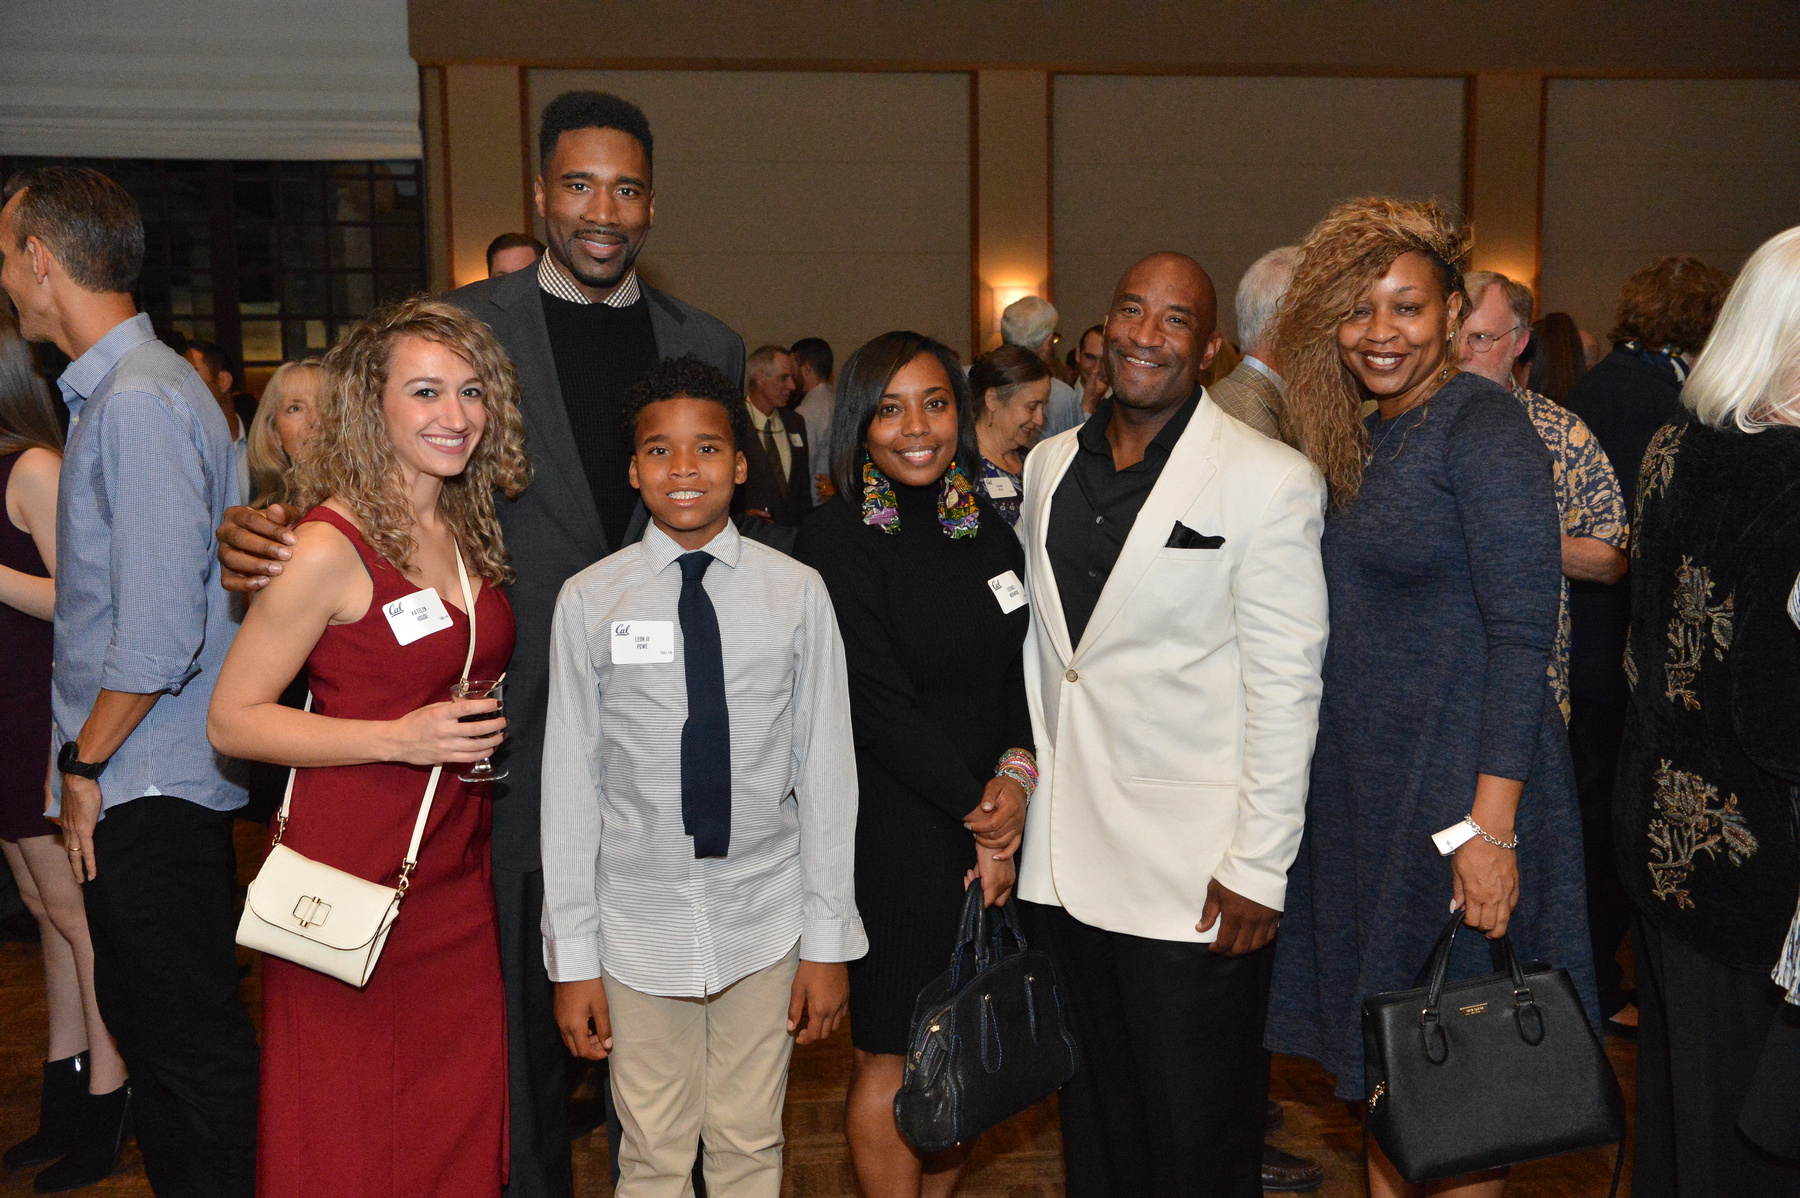 2018 Cal Hall of Fame ceremony _20181026_184643_MarcusE-(ZF-0861-35620-1-060).jpg